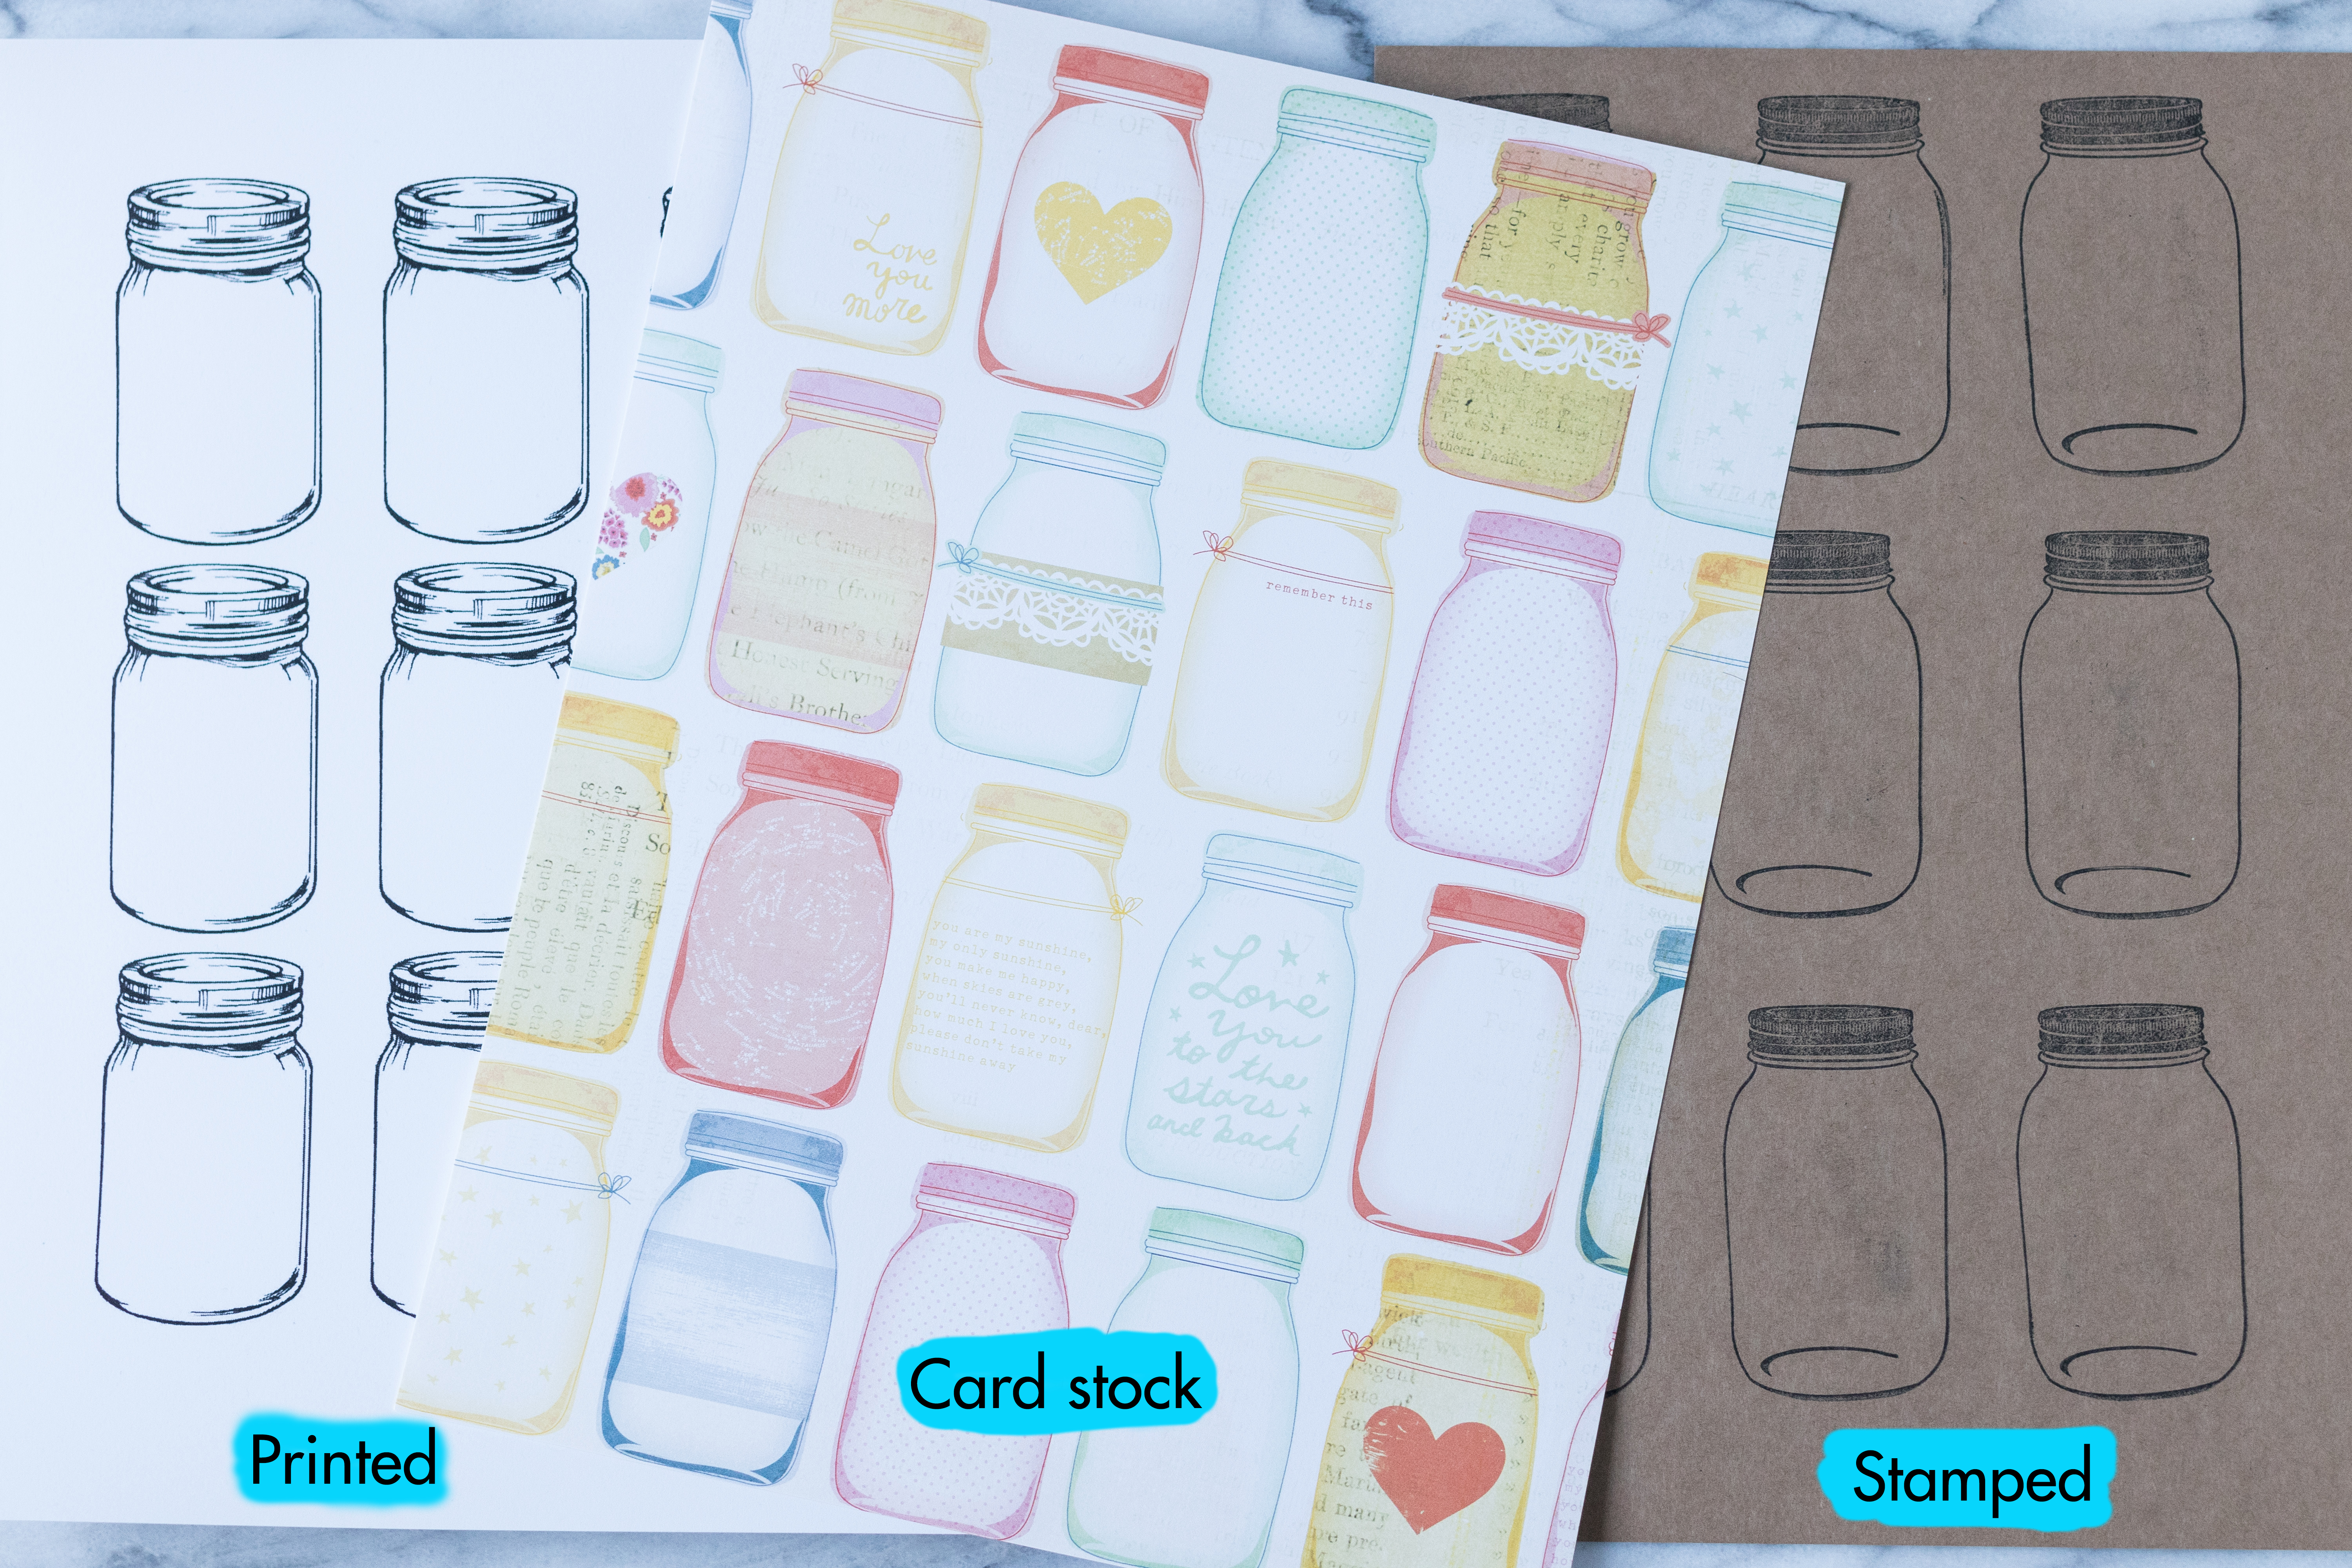 Three ways to create mason jar scrapbook embellishments: printed, card stock/scrapbook paper, and stamped. #DIY #masonjars #scrapbookembellishments | https://www.roseclearfield.com